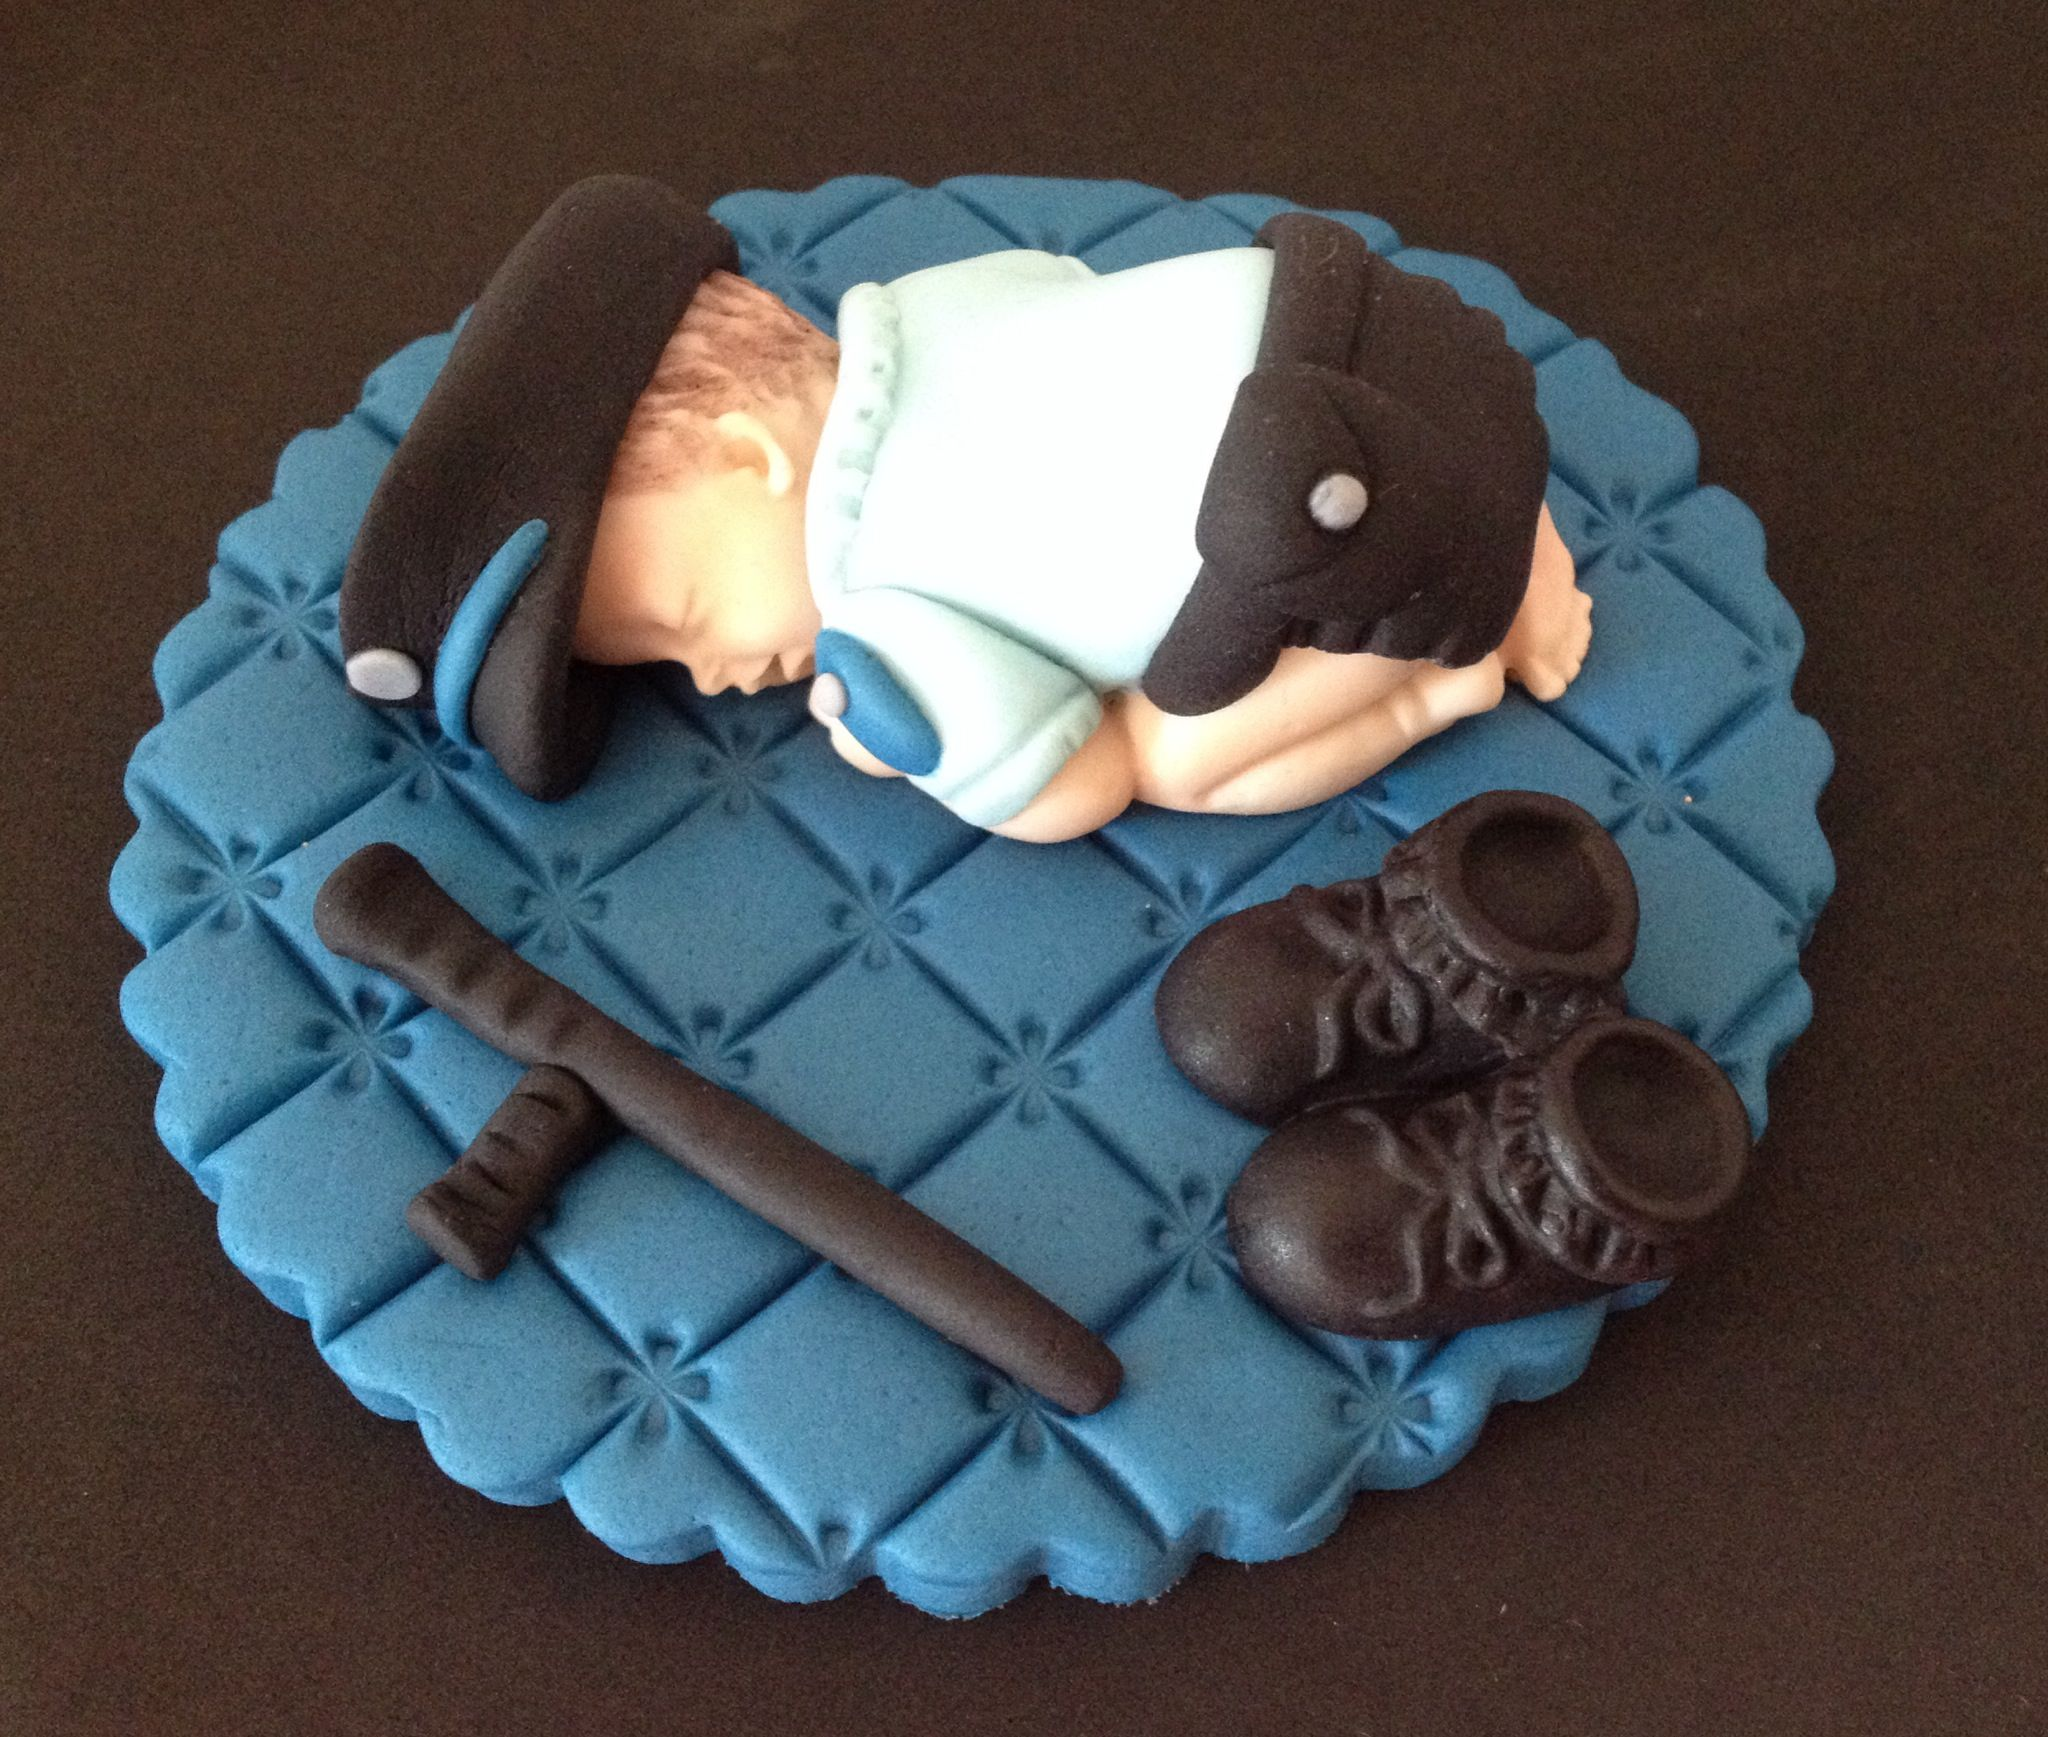 Fondant Police Baby Cake Topper By Evynisscaketopper On Etsy Com Police Baby Baby Cake Baby Cake Topper